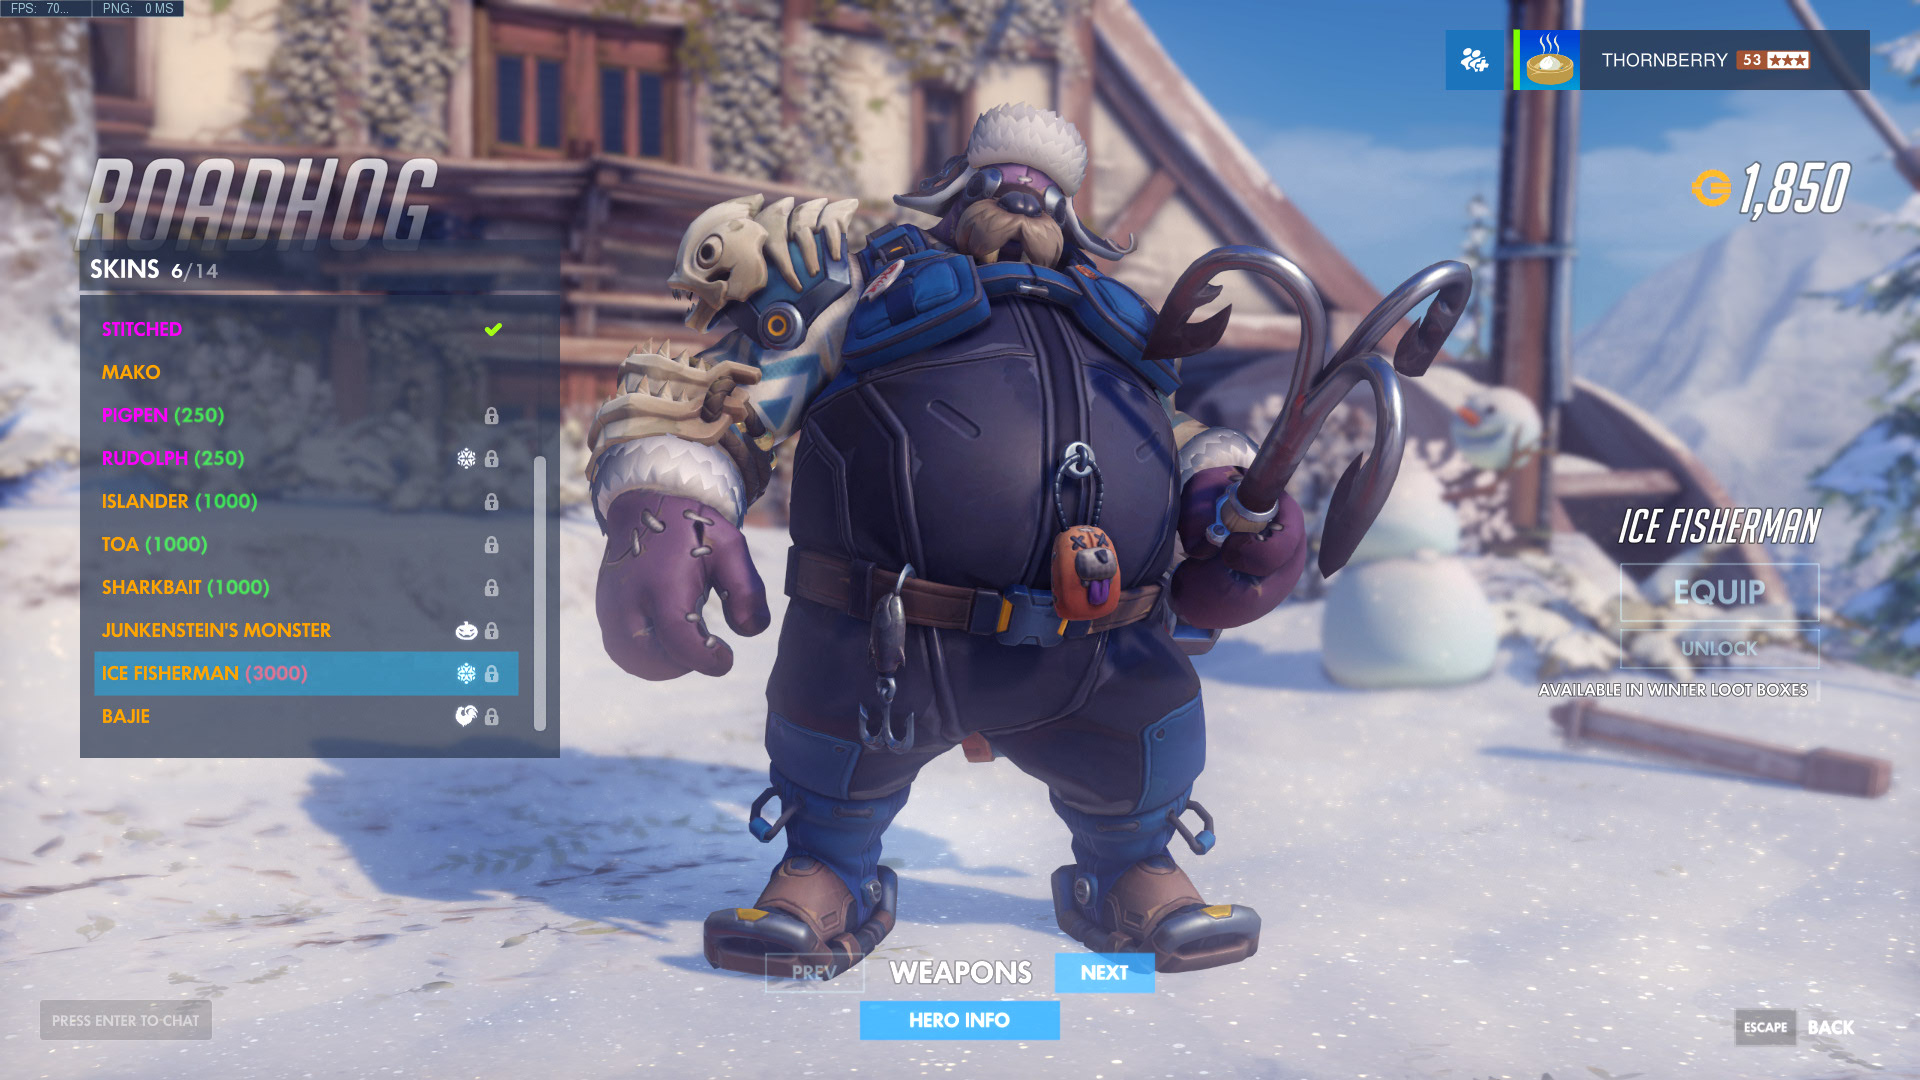 Overwatch Winter Wonderland 2017 Skins - All the Legendary skins in ...